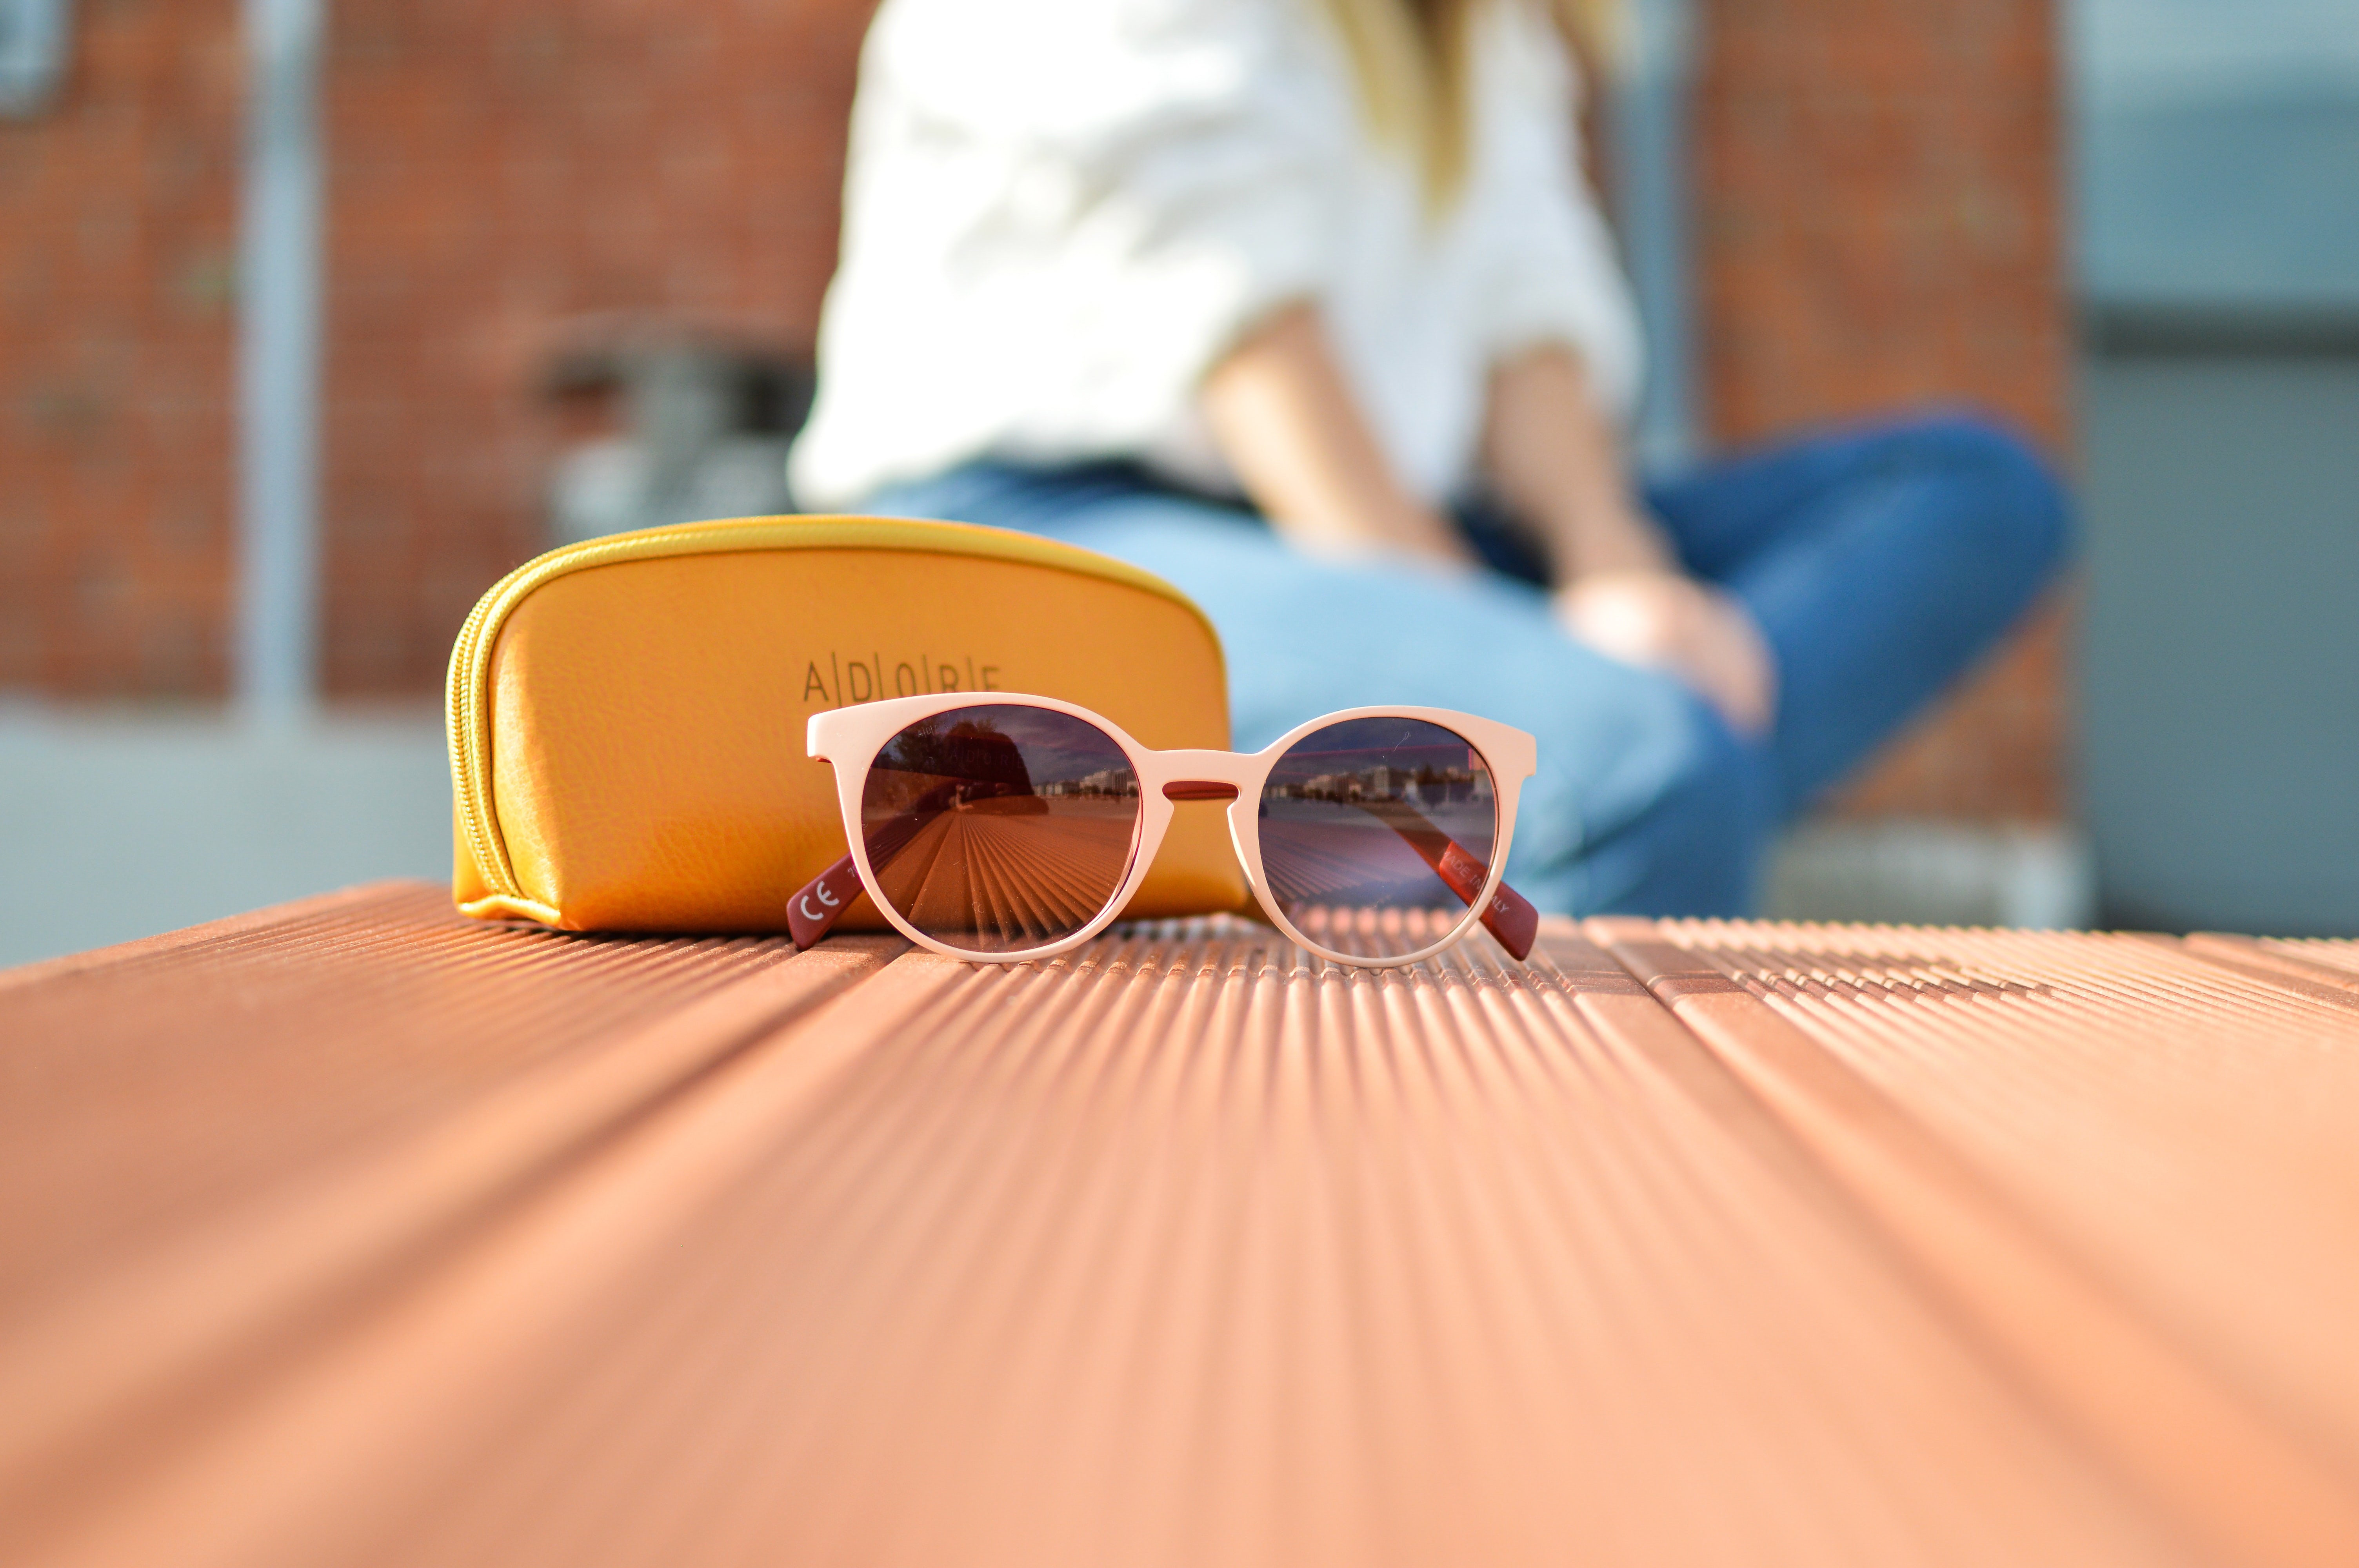 sunglasses beside a purse